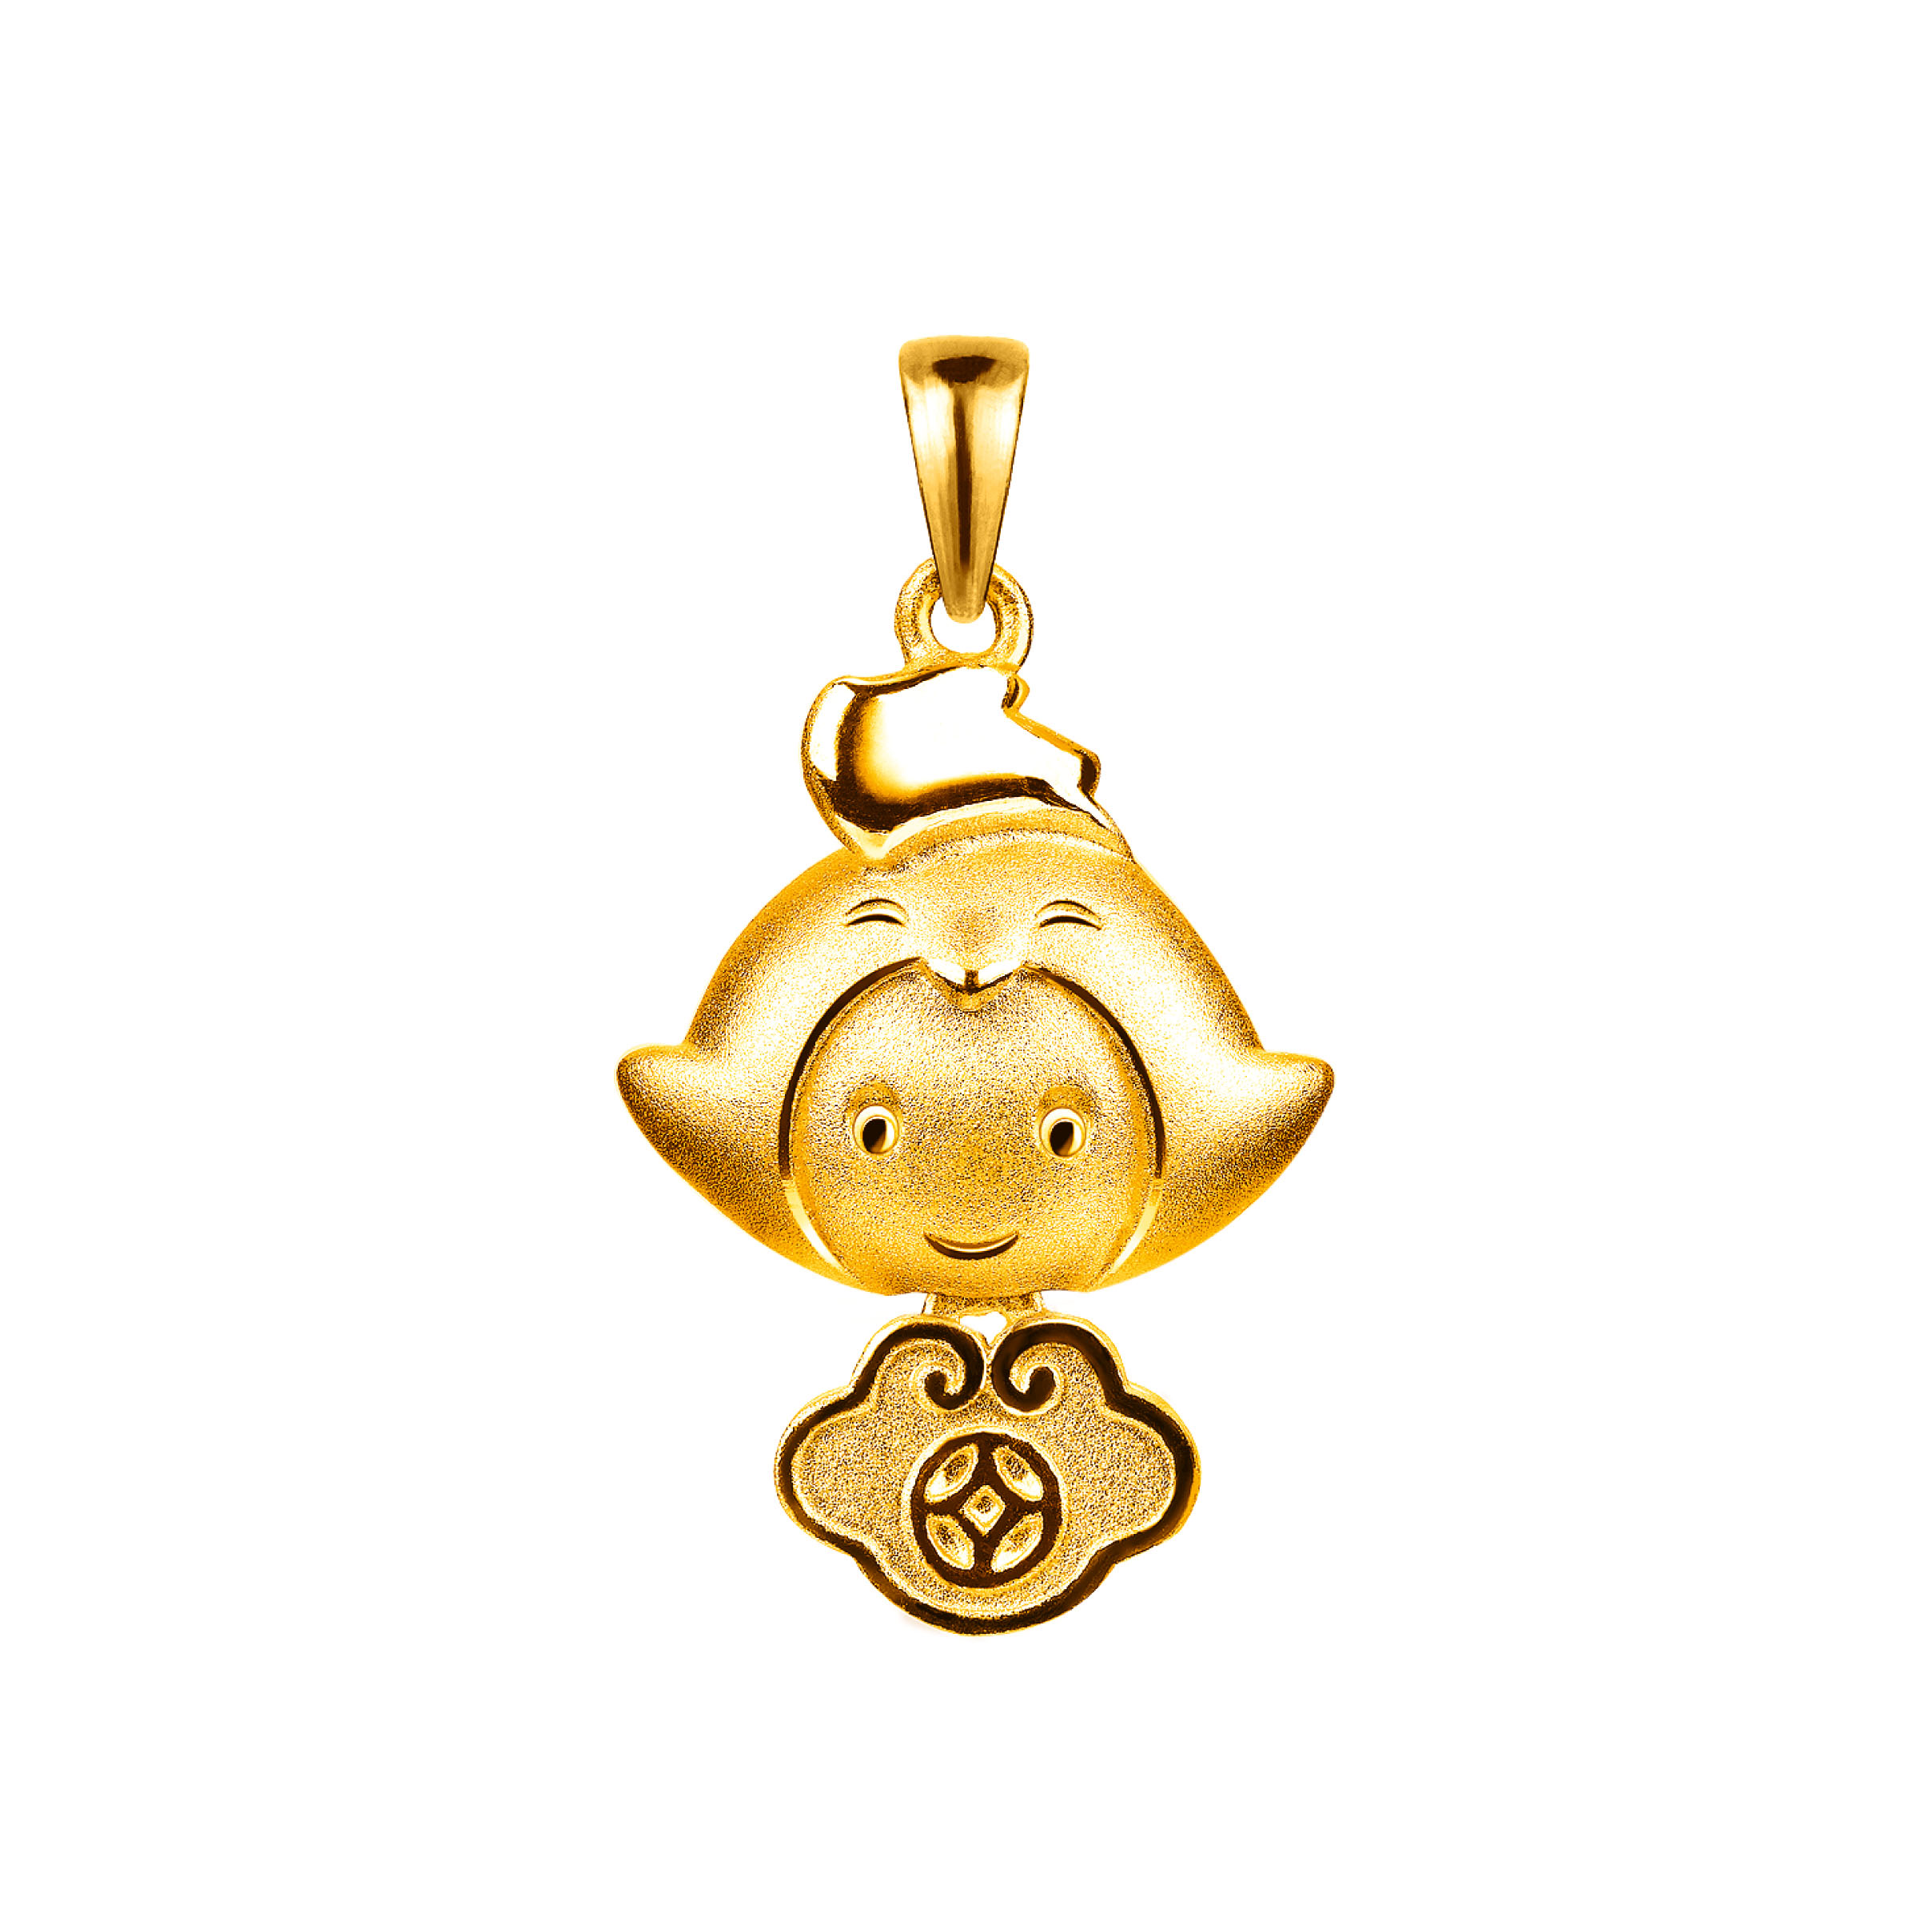 12 Chinese Zodiac Gold Pendant-Rooster